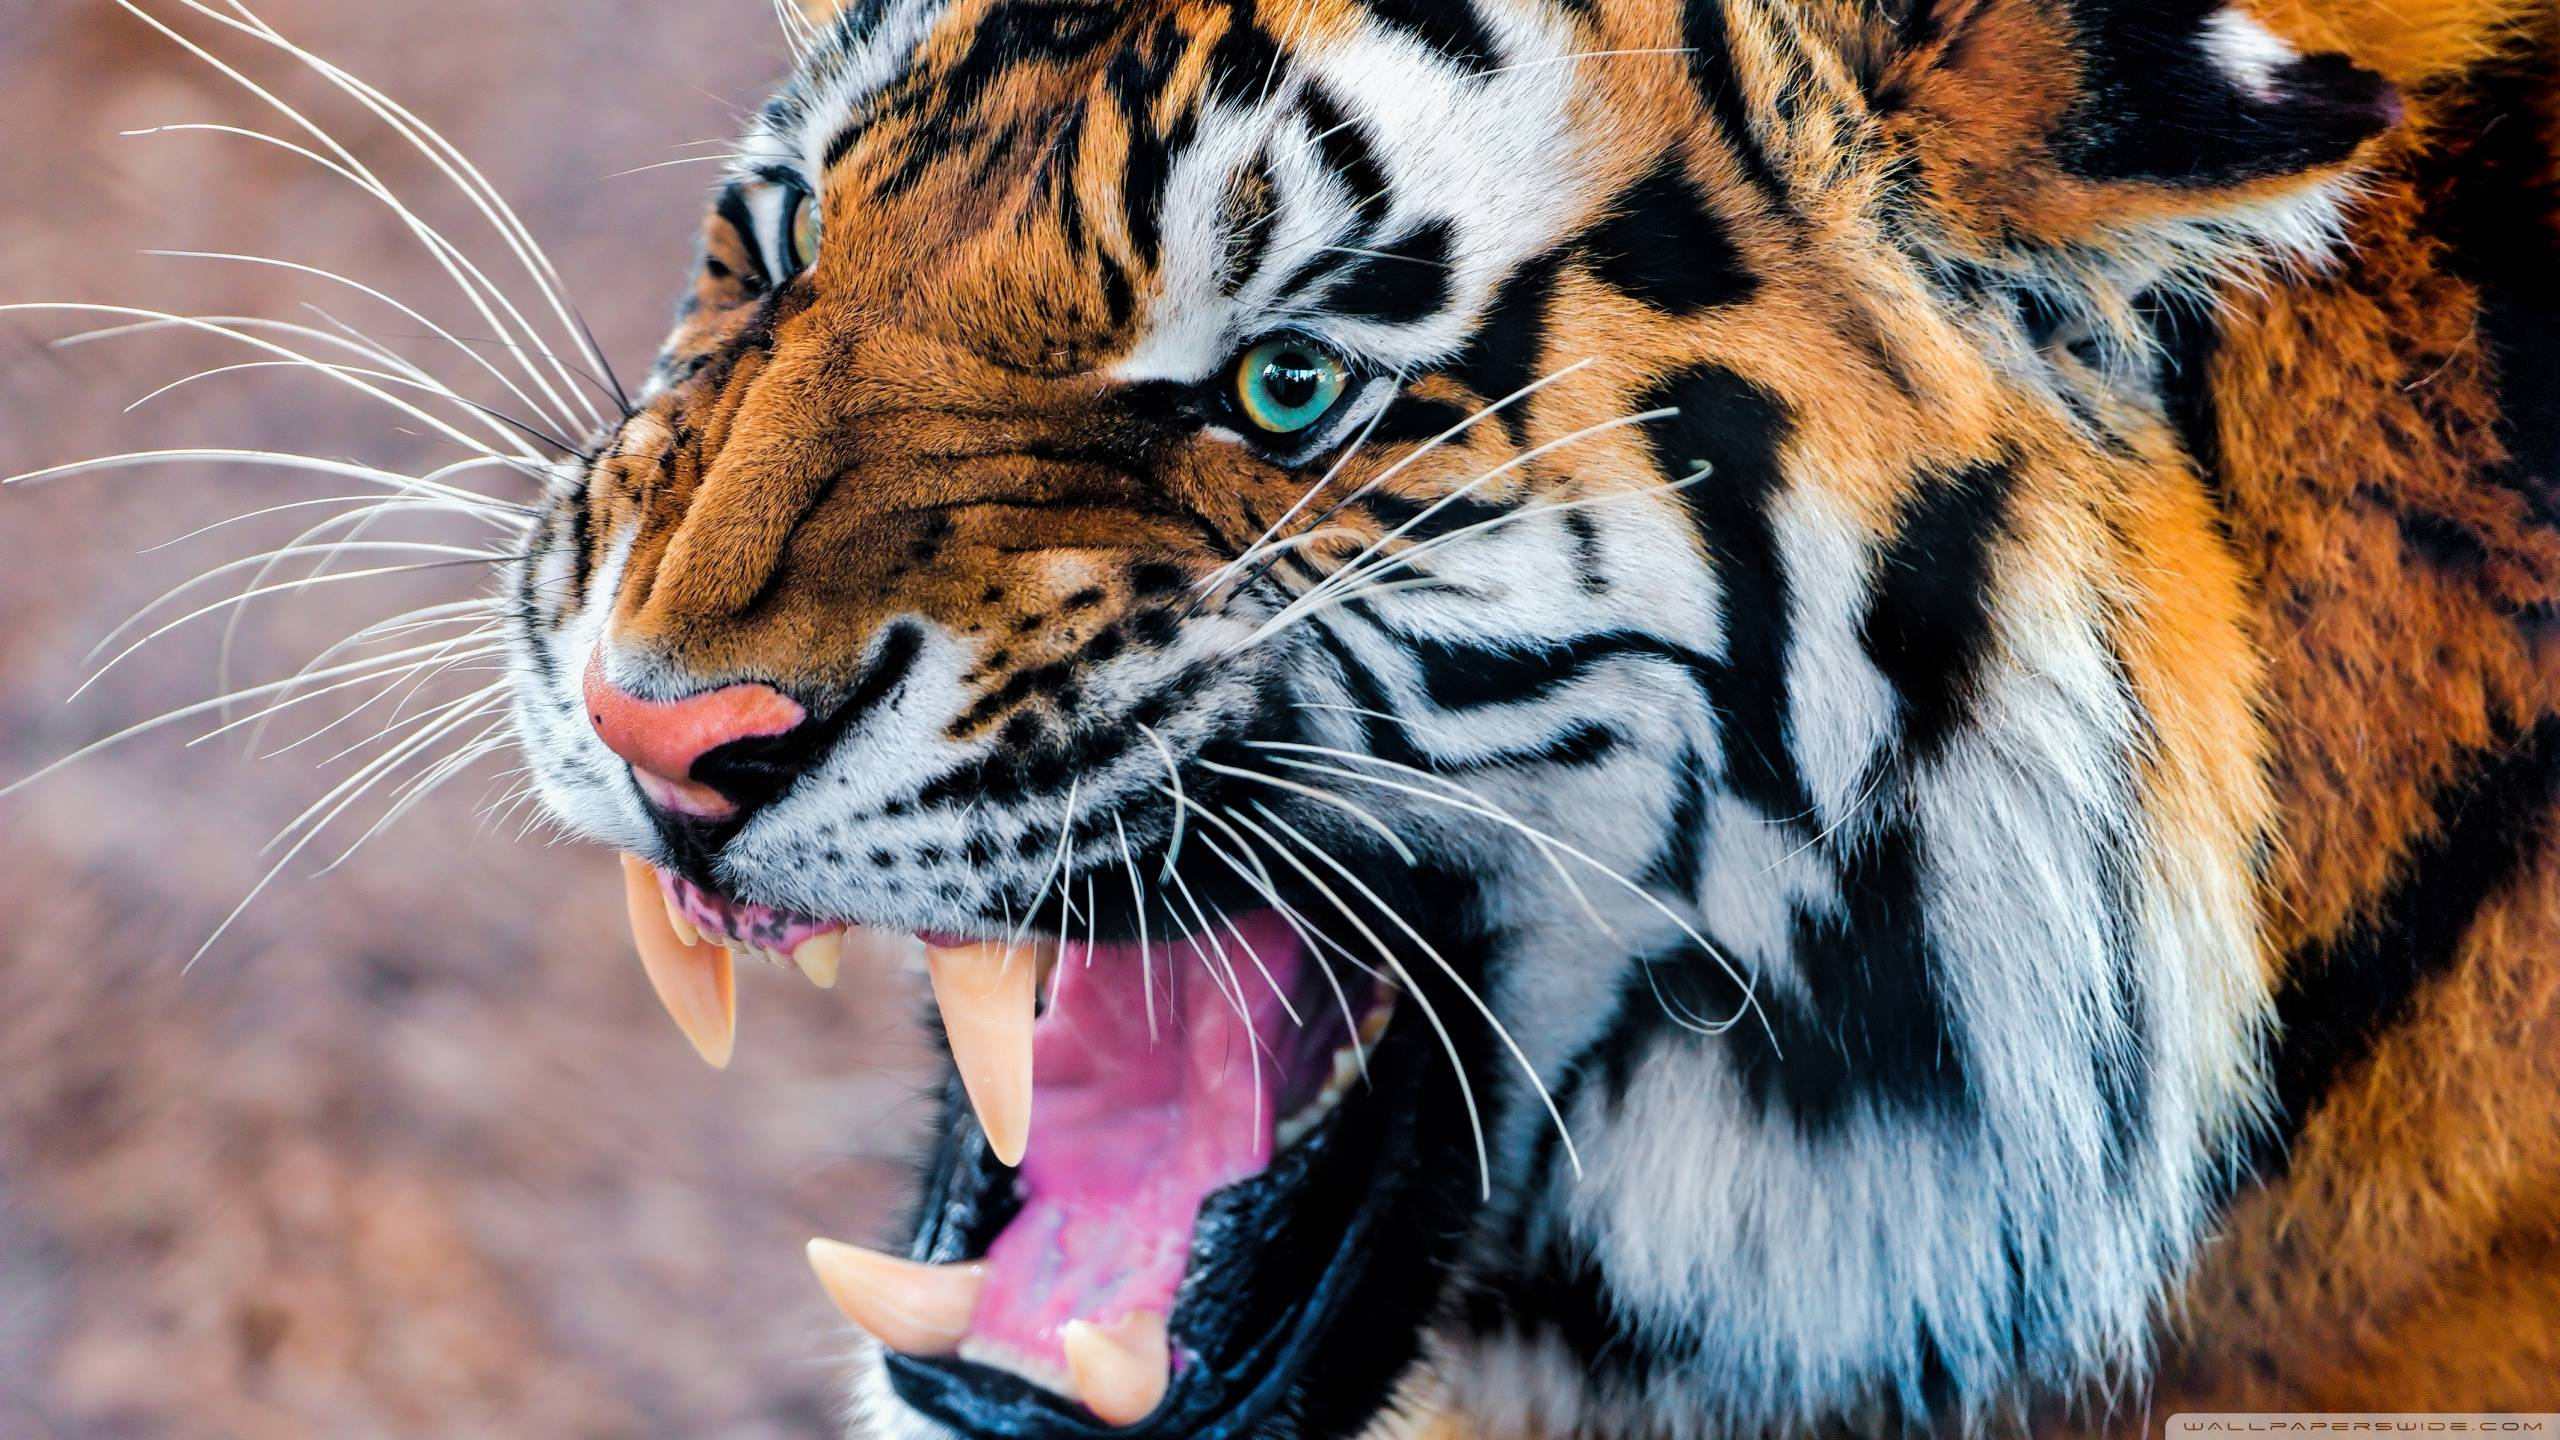 Wallpapers For > Angry Siberian Tiger Wallpapers